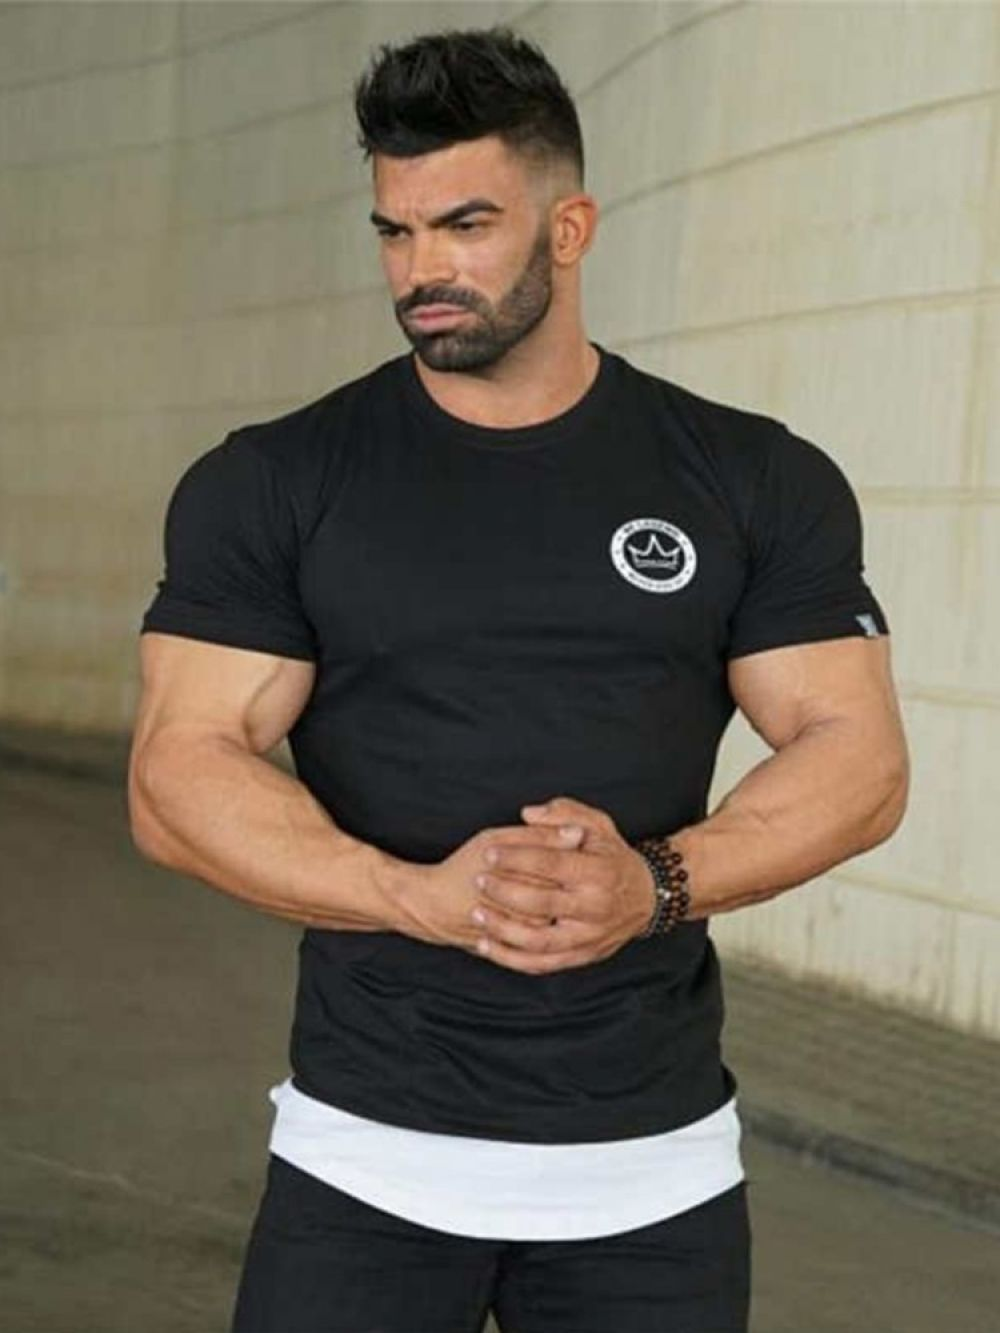 Fitness Freak Bodybuilding Slim Fit Shirt Seek In Us Bodybuilding T Shirts Bodybuilding Shirt Workout Shirts